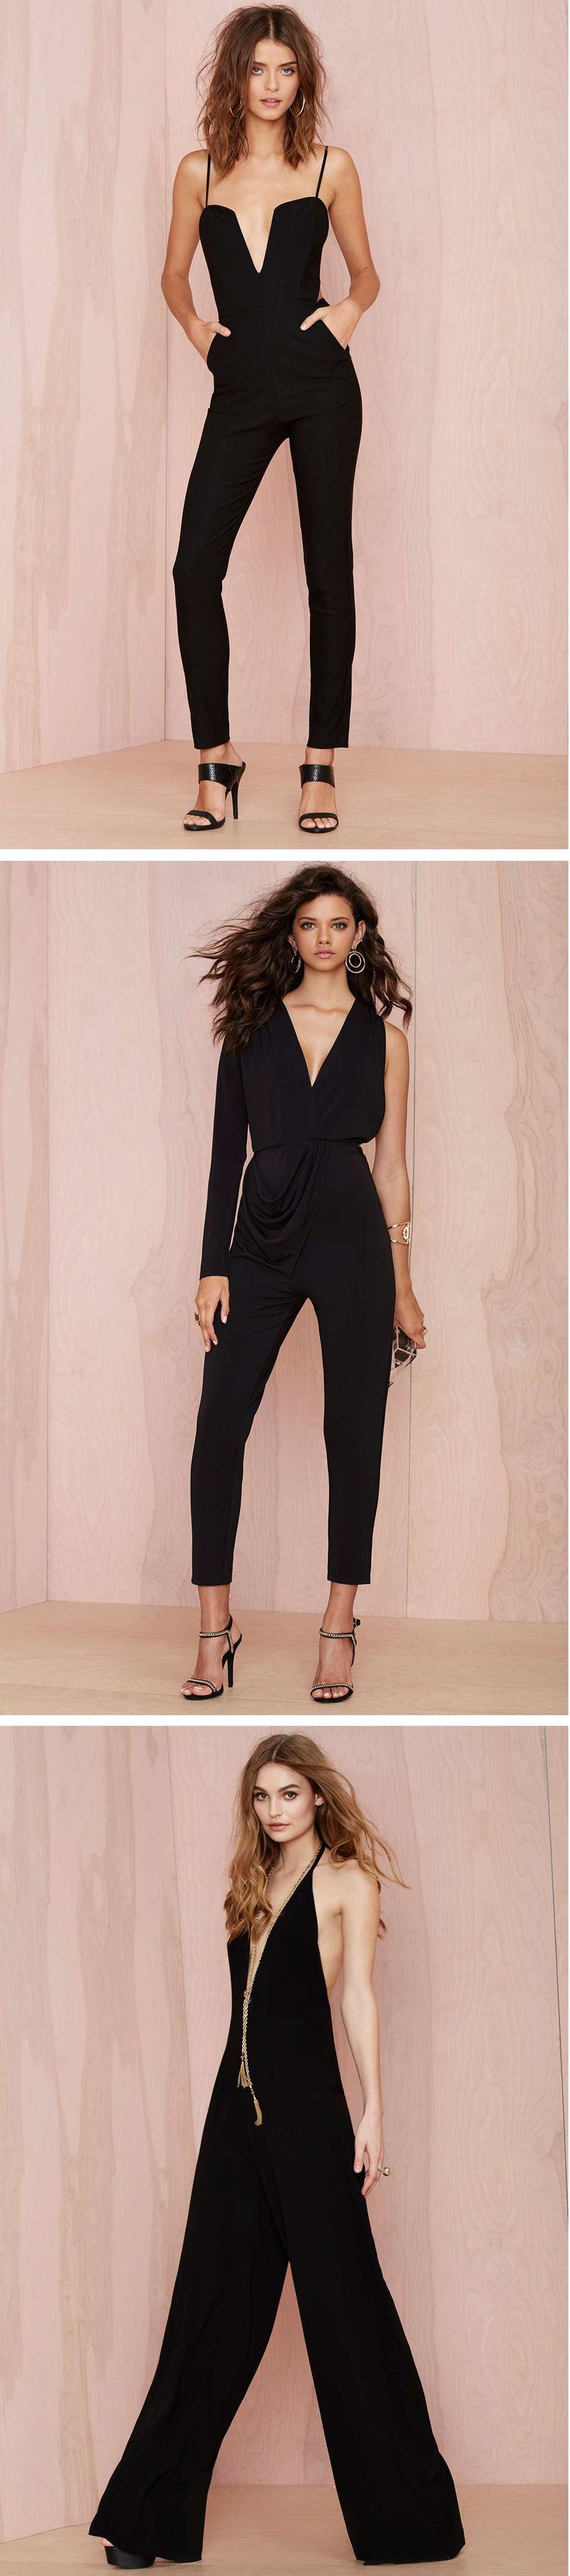 Switch up your going out look with a sleek romper.